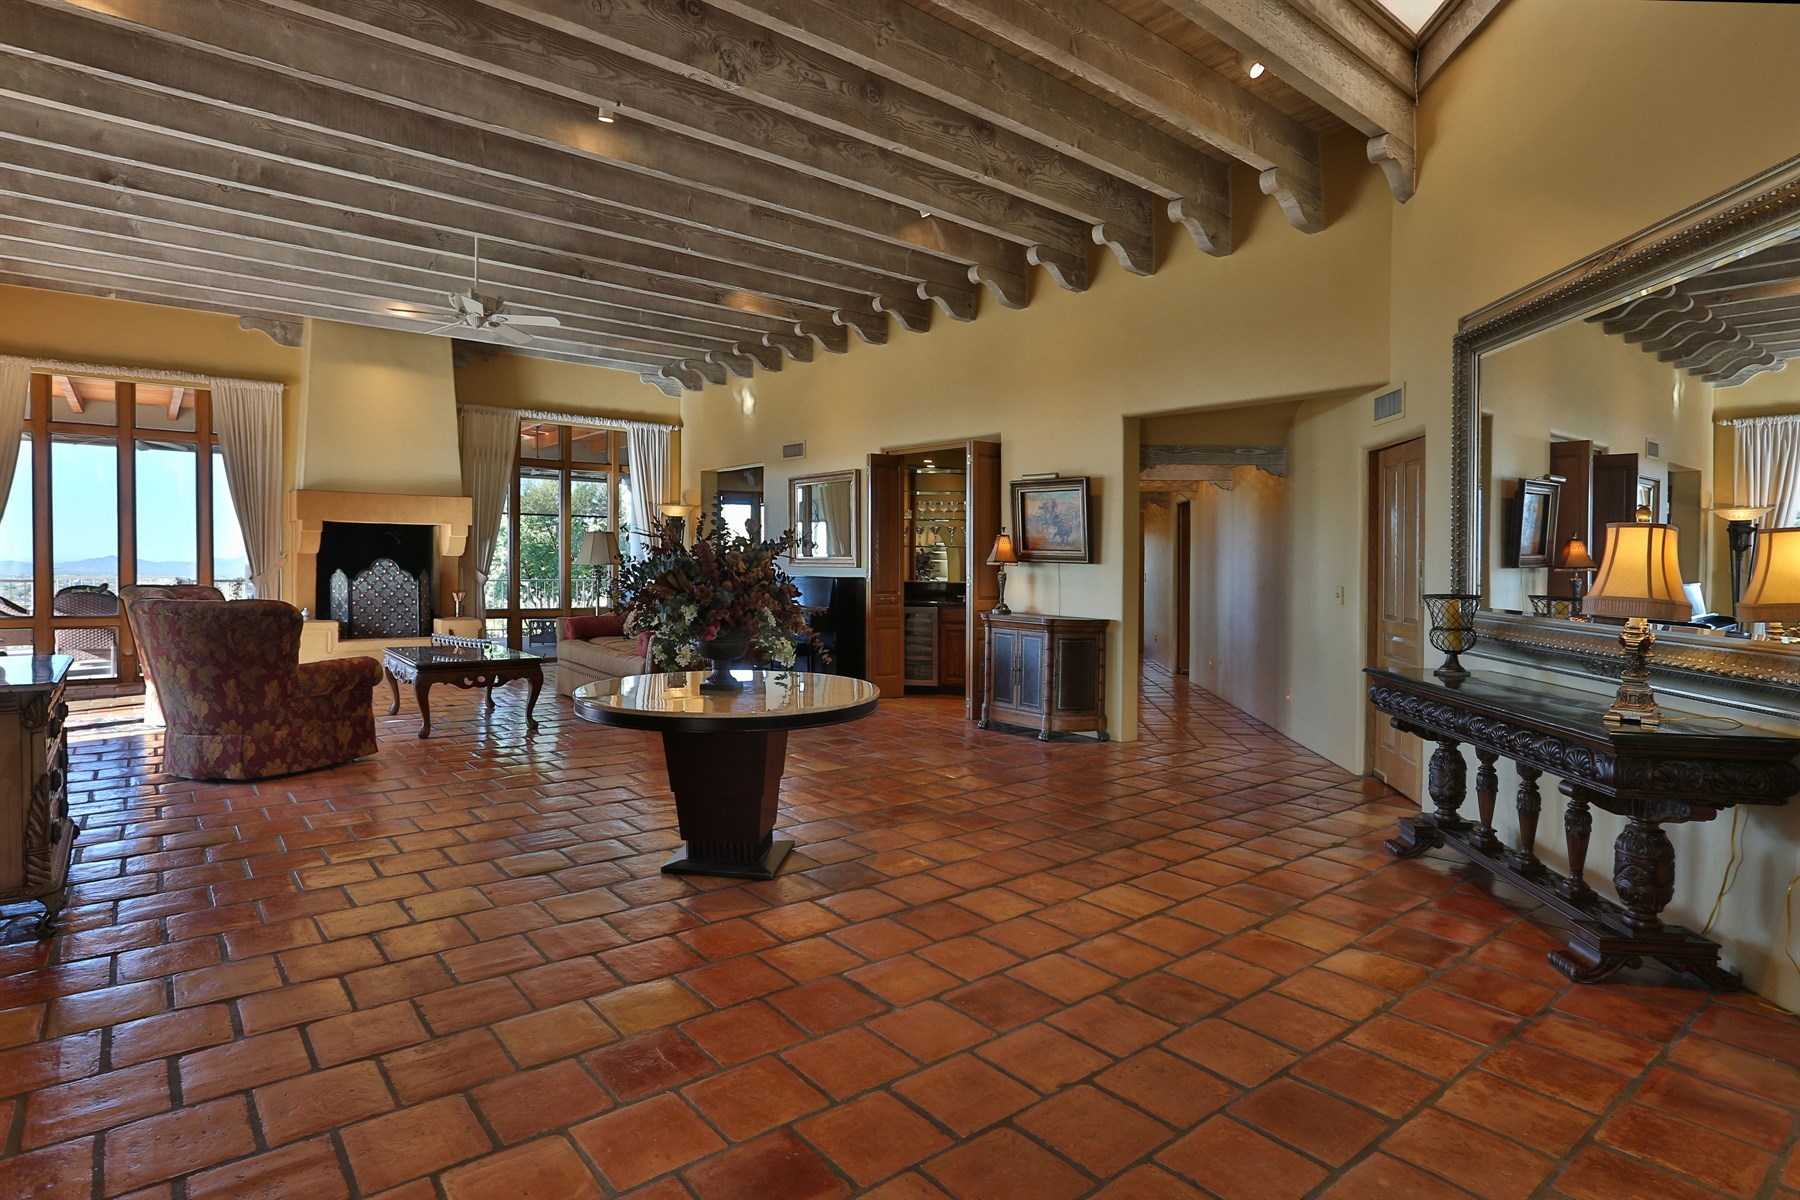 Single Family Home for Sale at Stunning valley views on two acres in one of Carefrees finest neighborhoods 6527 E EL Sendero Rd Carefree, Arizona, 85377 United States